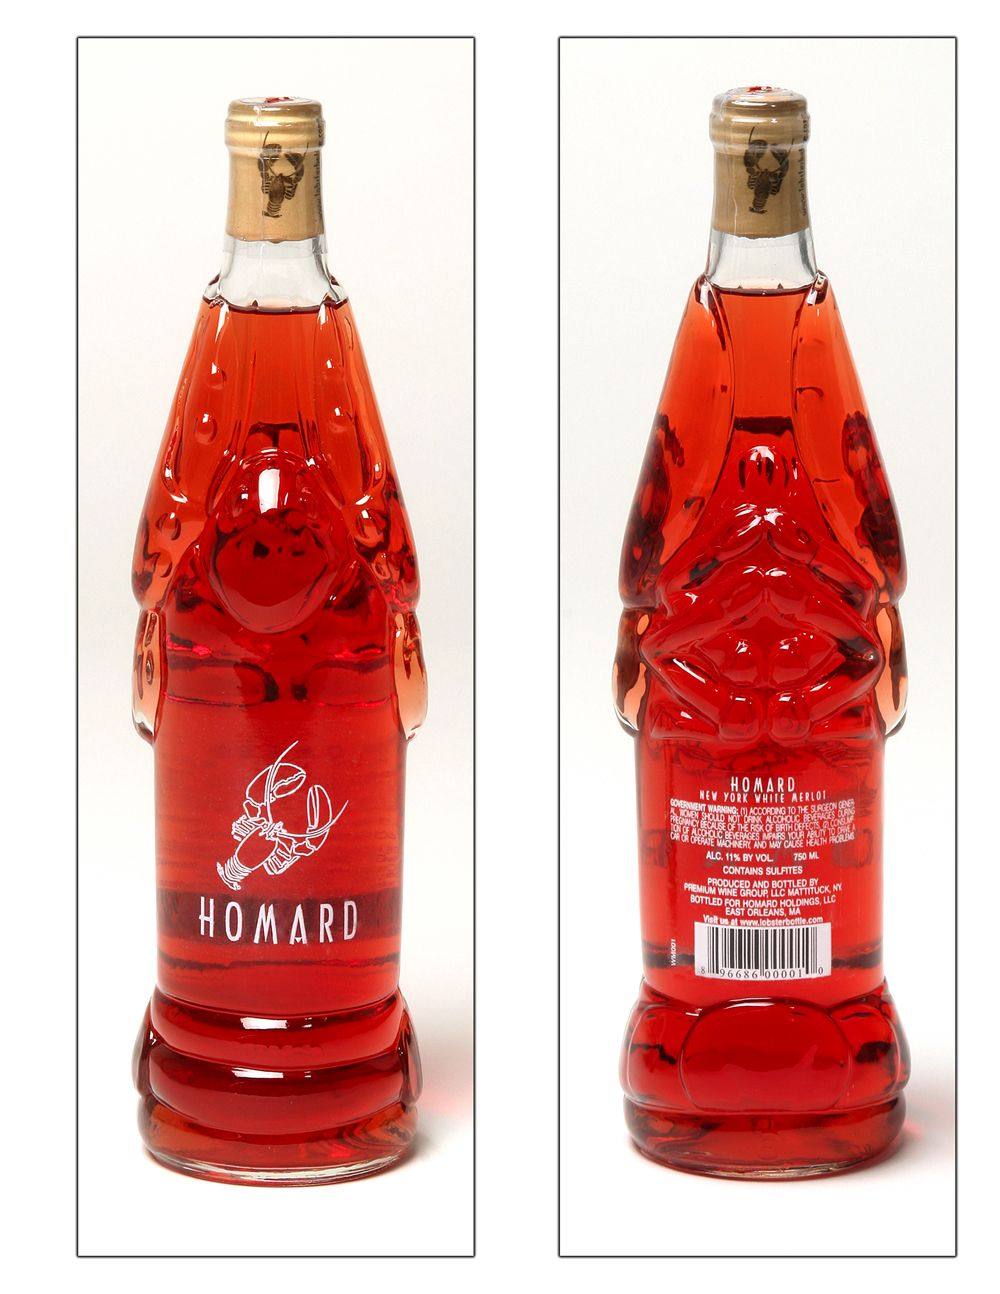 Homard Wine Joe Crab Shack Crab Shack Bottle